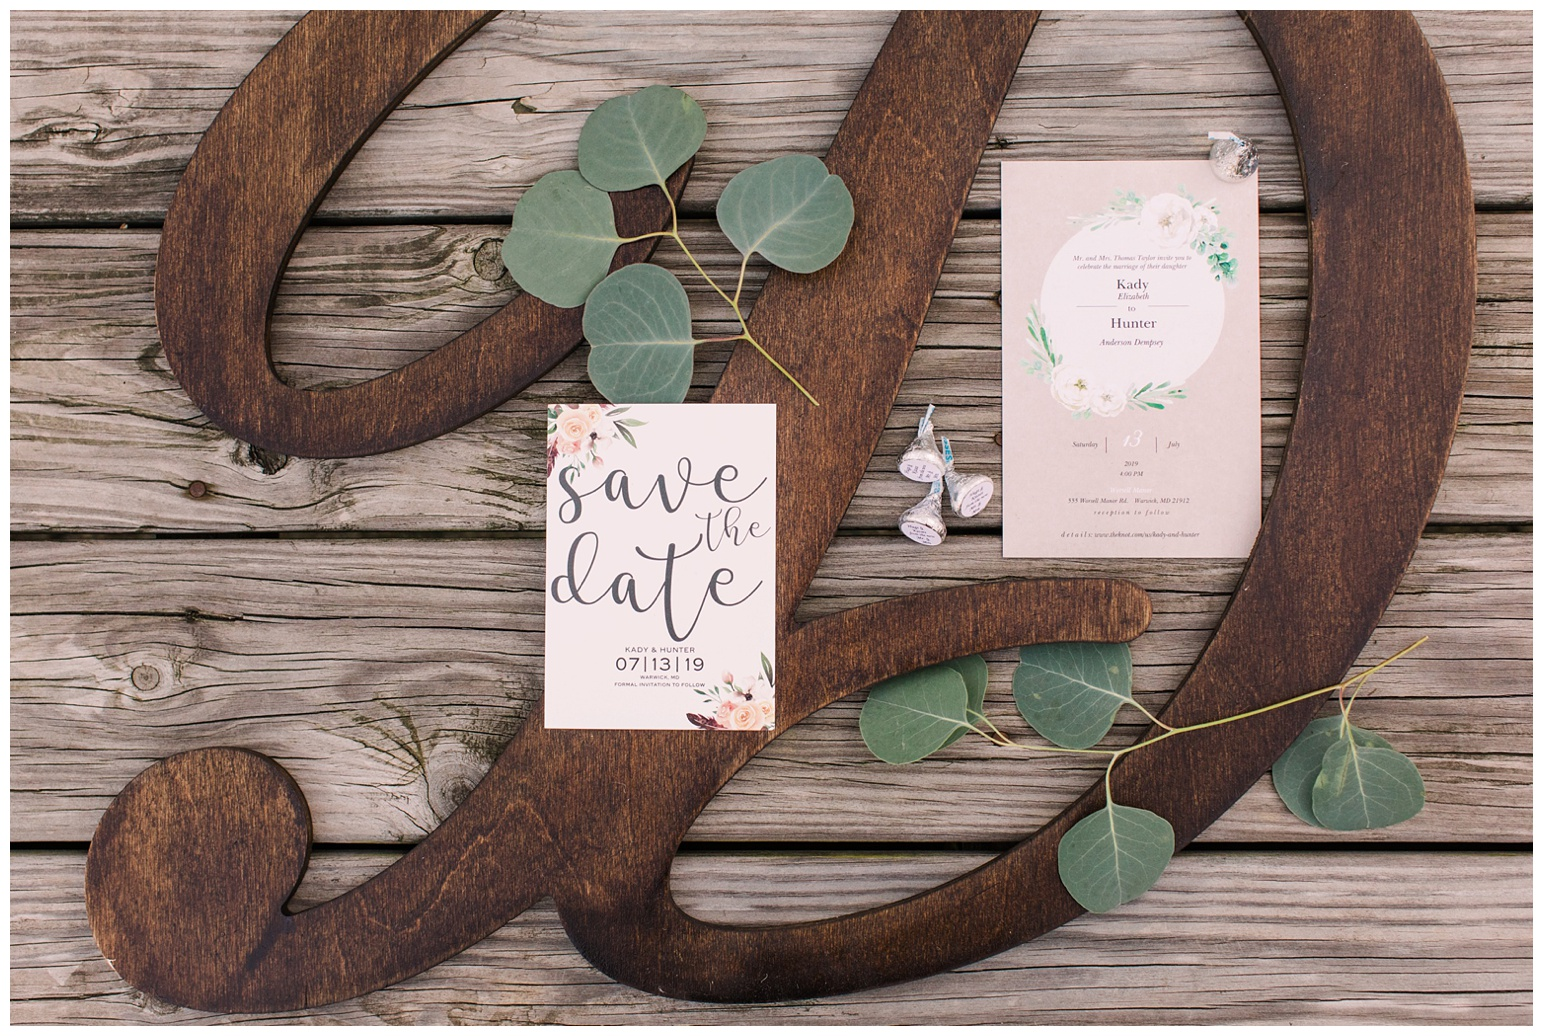 eastern shore maryland - coastal - bay - beach - real wedding inspiration and ideas - now featured on My Eastern Shore Wedding